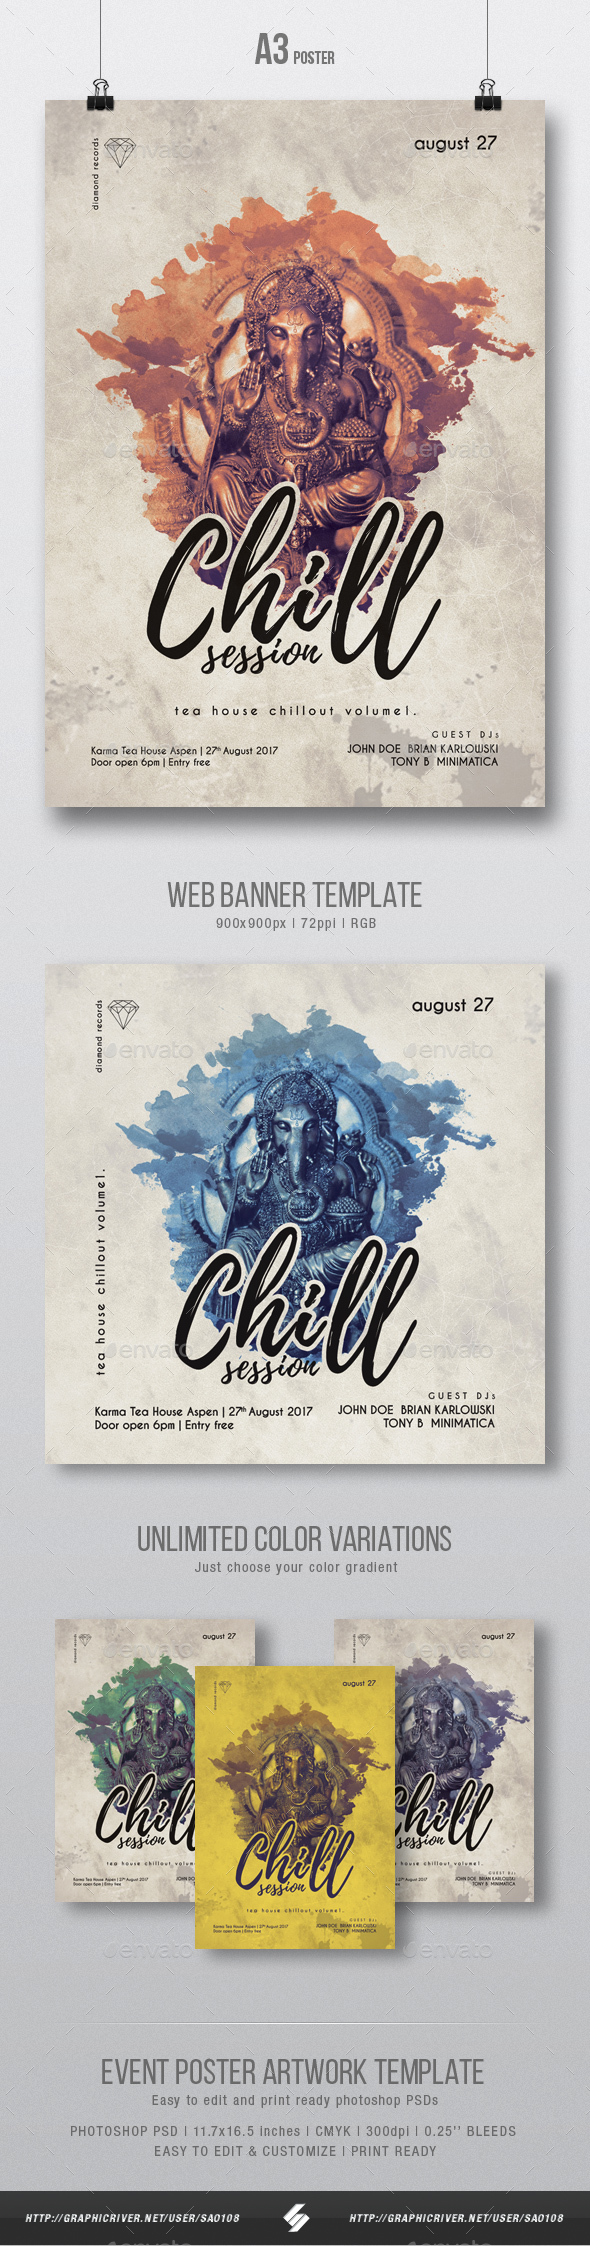 Dub Chill Session Flyer / Poster Artwork Template A3 - Clubs & Parties Events